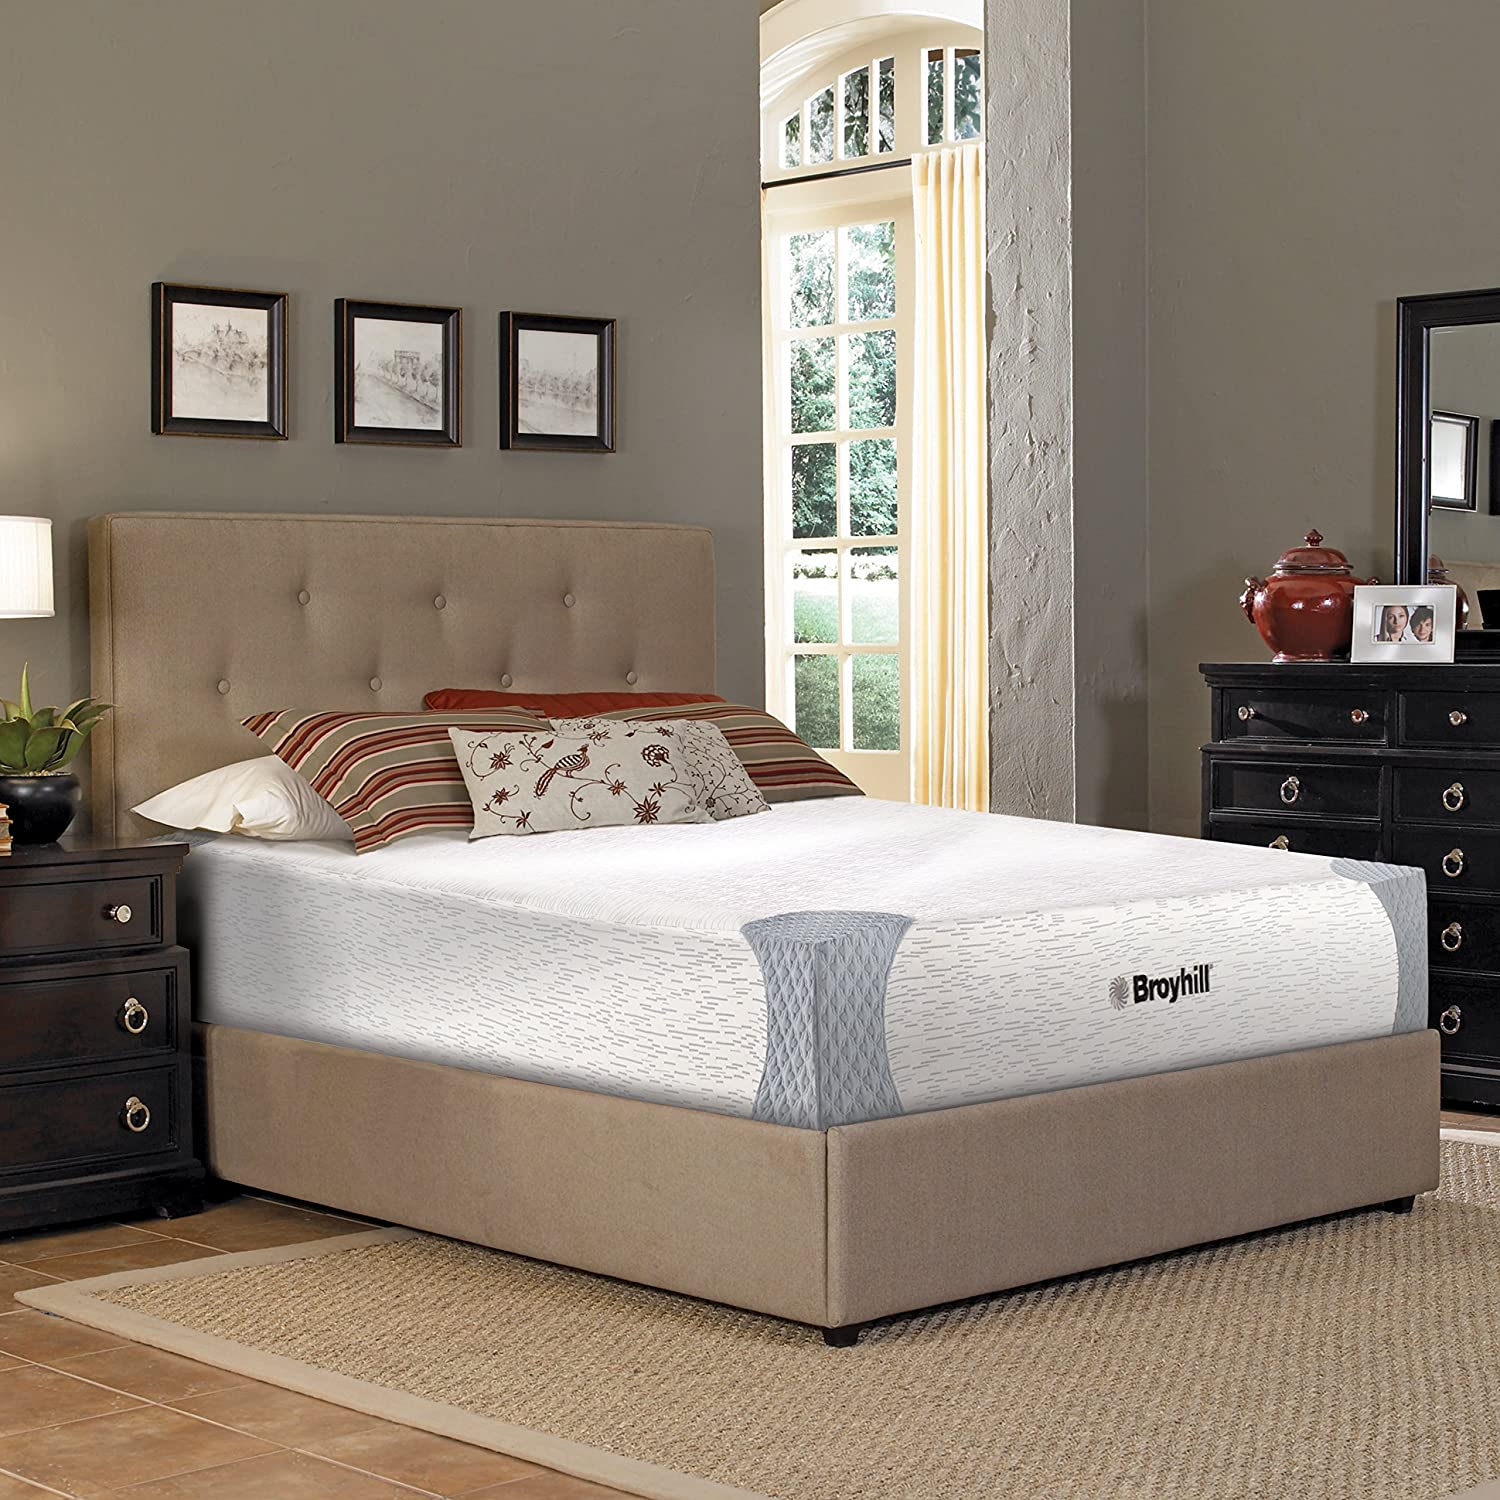 Broyhill Sensura Memory Foam Mattress with Cooling GelFlex Foam, 10 Twin